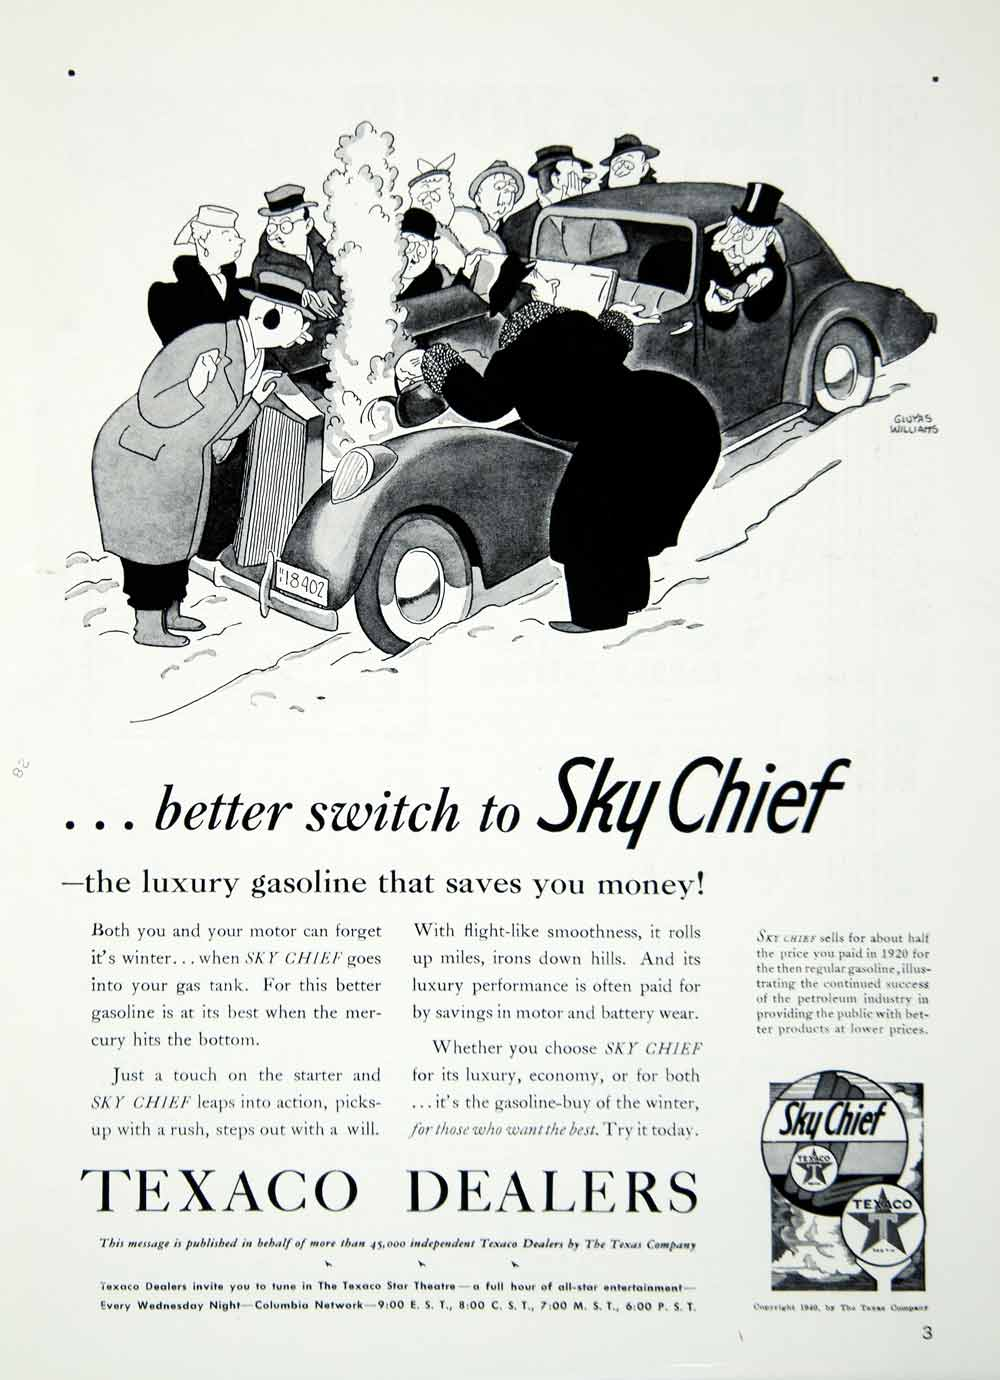 1940 Ad Texaco Dealers Sky Chief Gasoline Petroleum Gluyas Williams YHT1